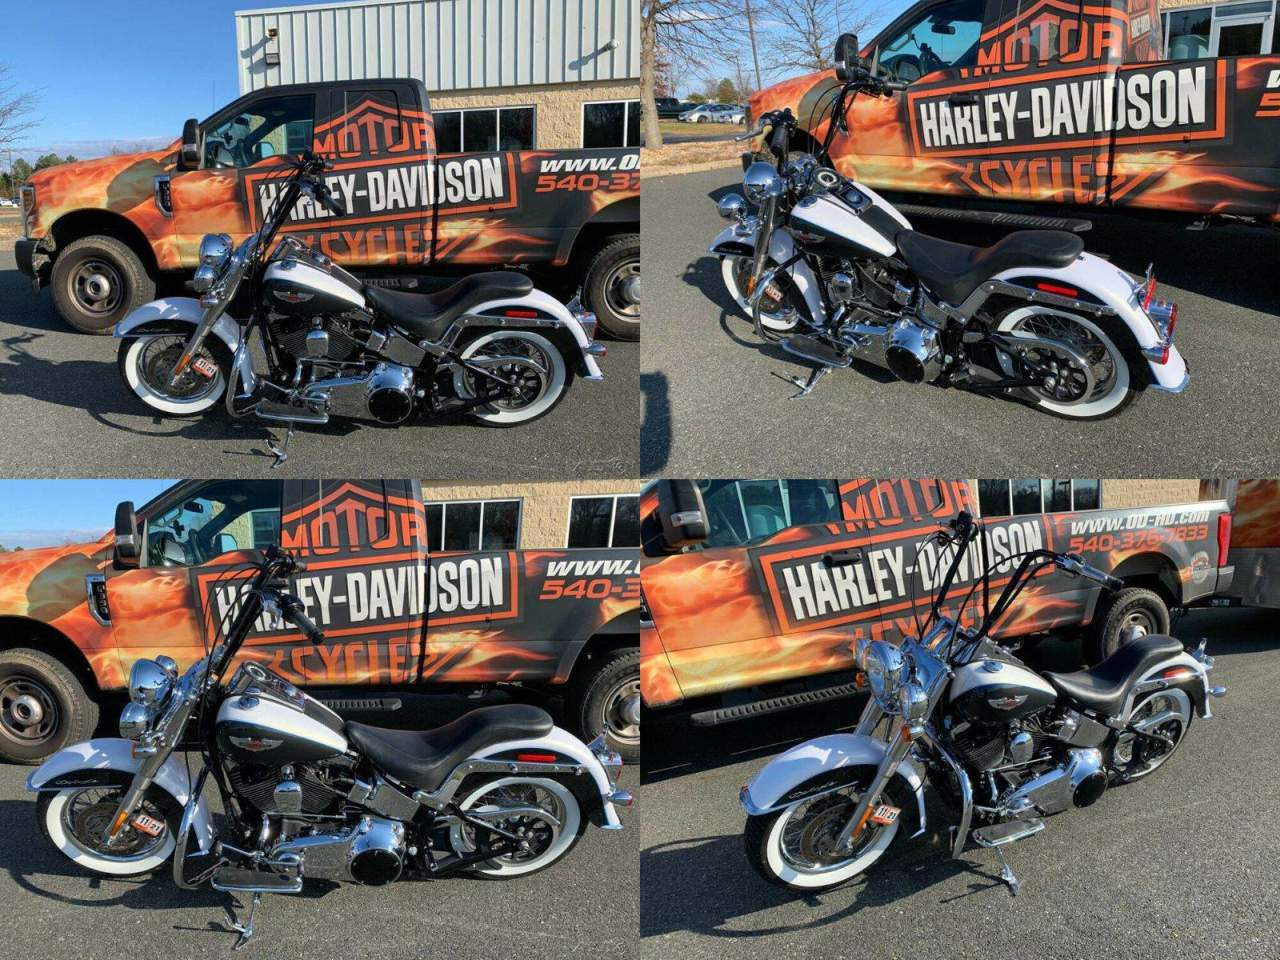 2008 Harley-Davidson Softail Deluxe White Gold Pearl / Black Pearl used for sale